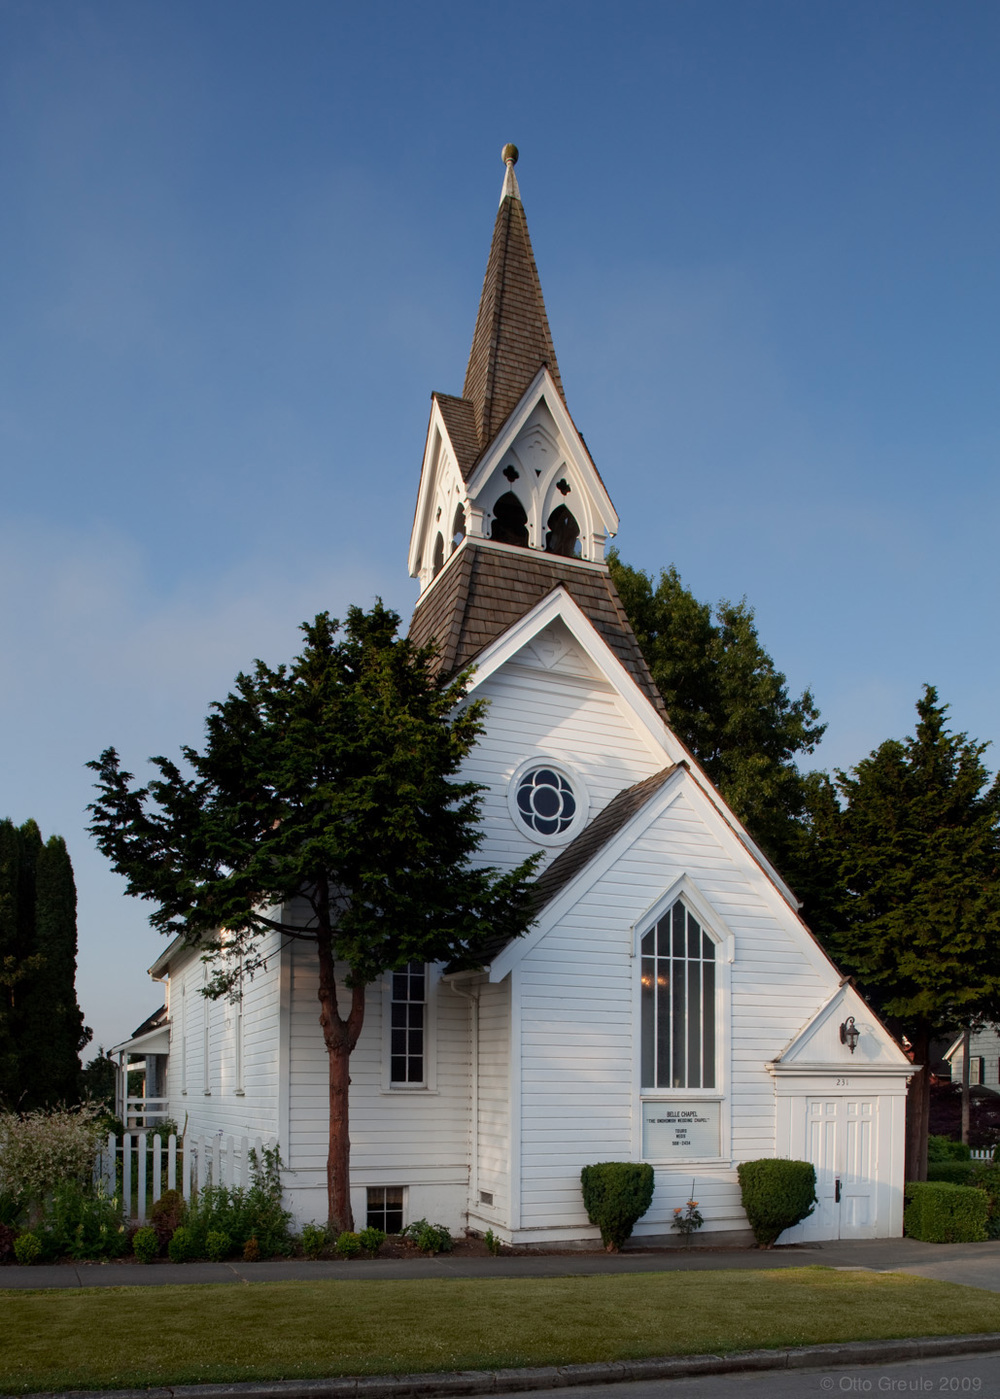 The Original Methodist Church, Snohomish, WA.